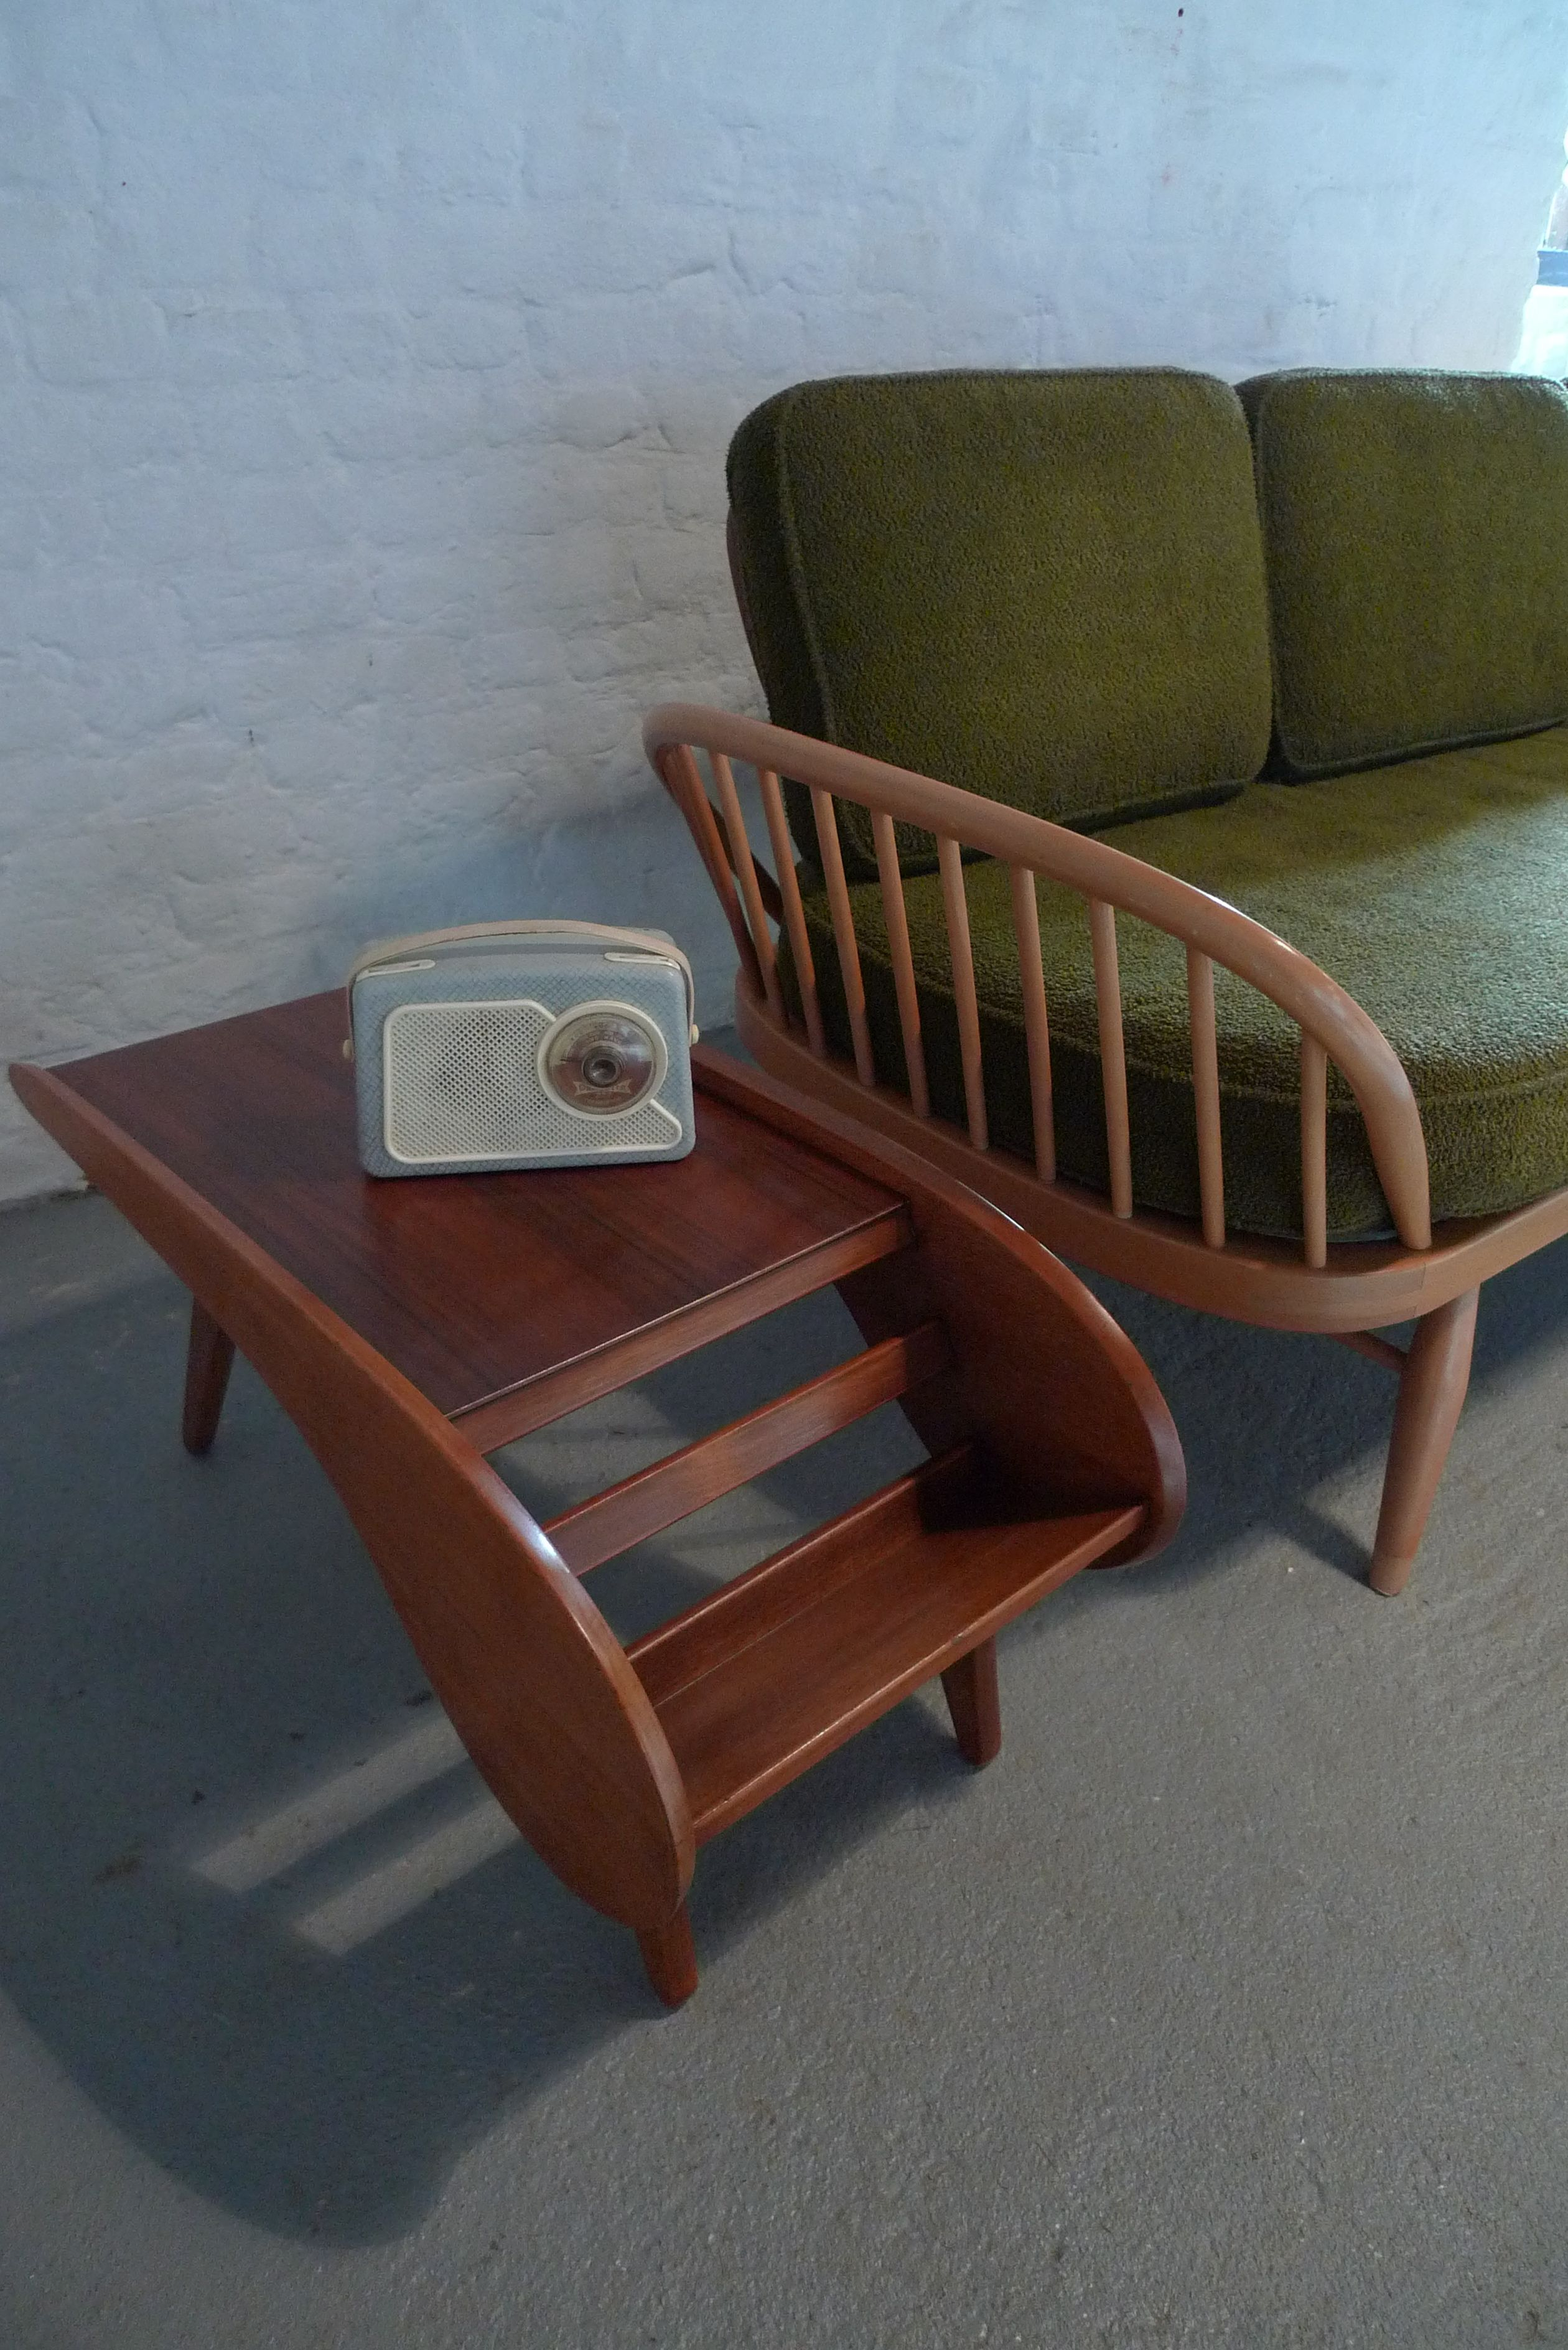 Teak 50s book donkey coffee side table buy it through website teak 50s book donkey coffee side table buy it through website retrokate geotapseo Image collections